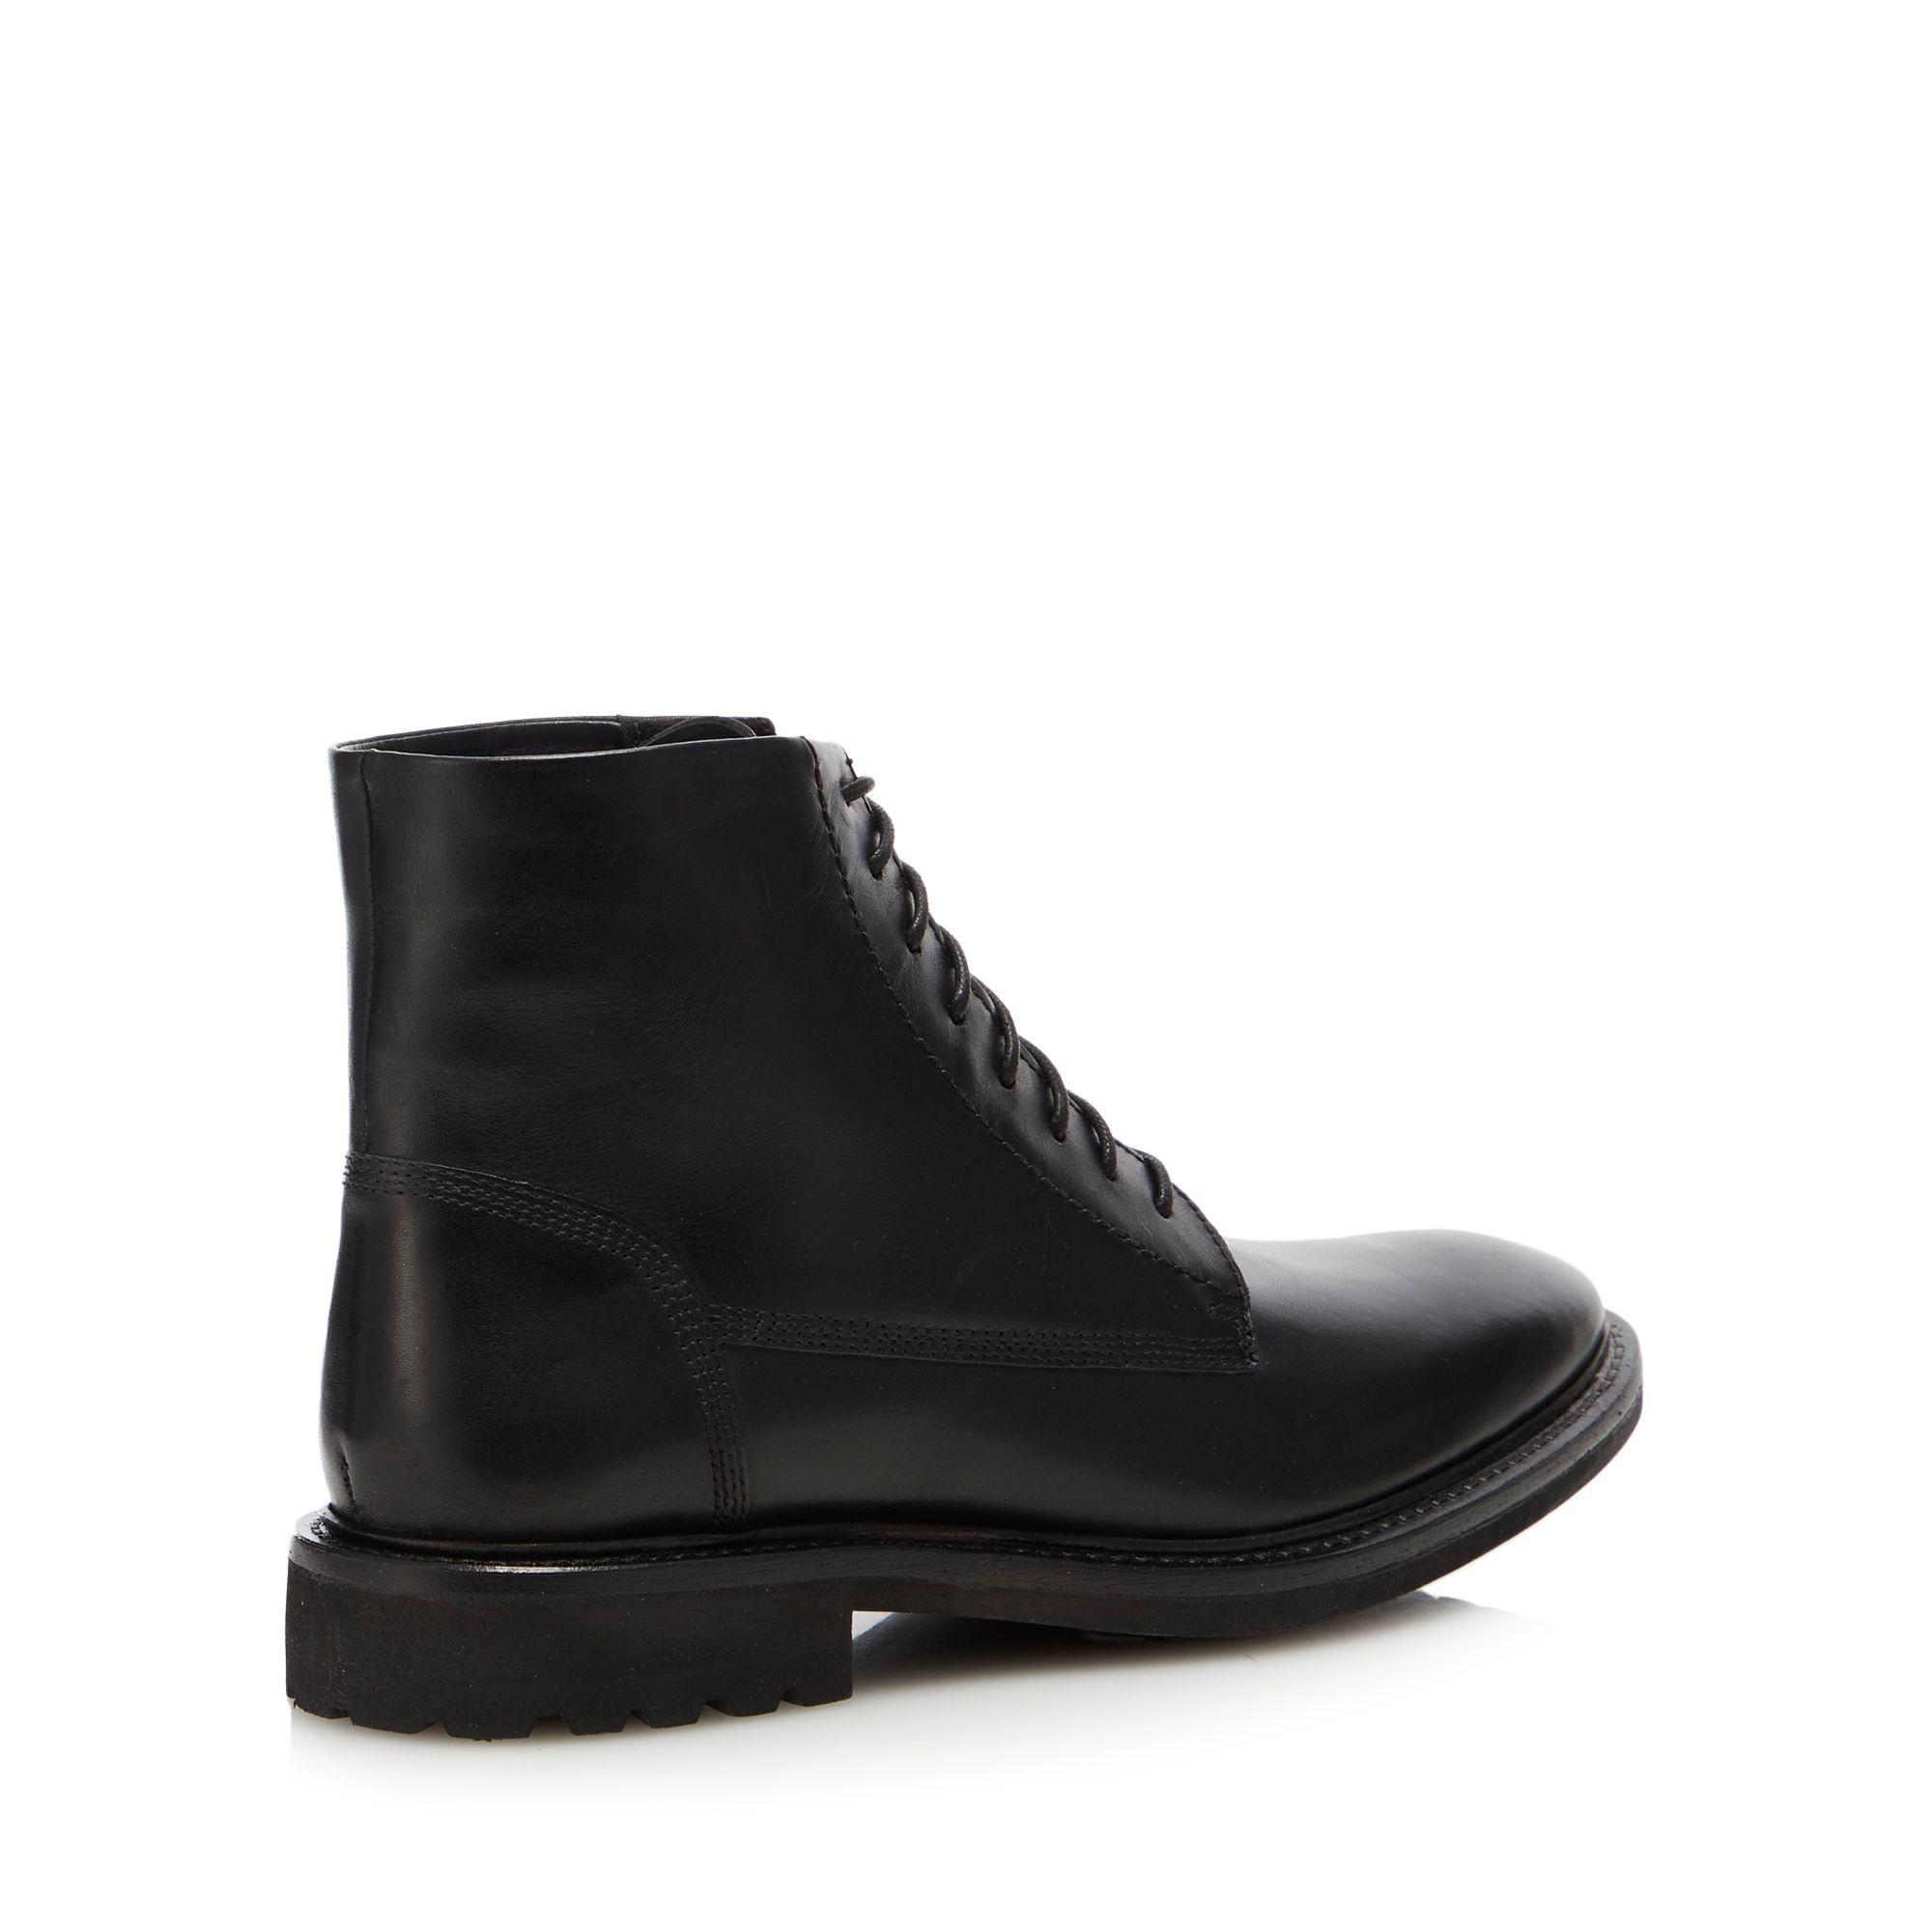 75bb4513f868 Red Herring Black  lunar  Military Boots in Black for Men - Lyst